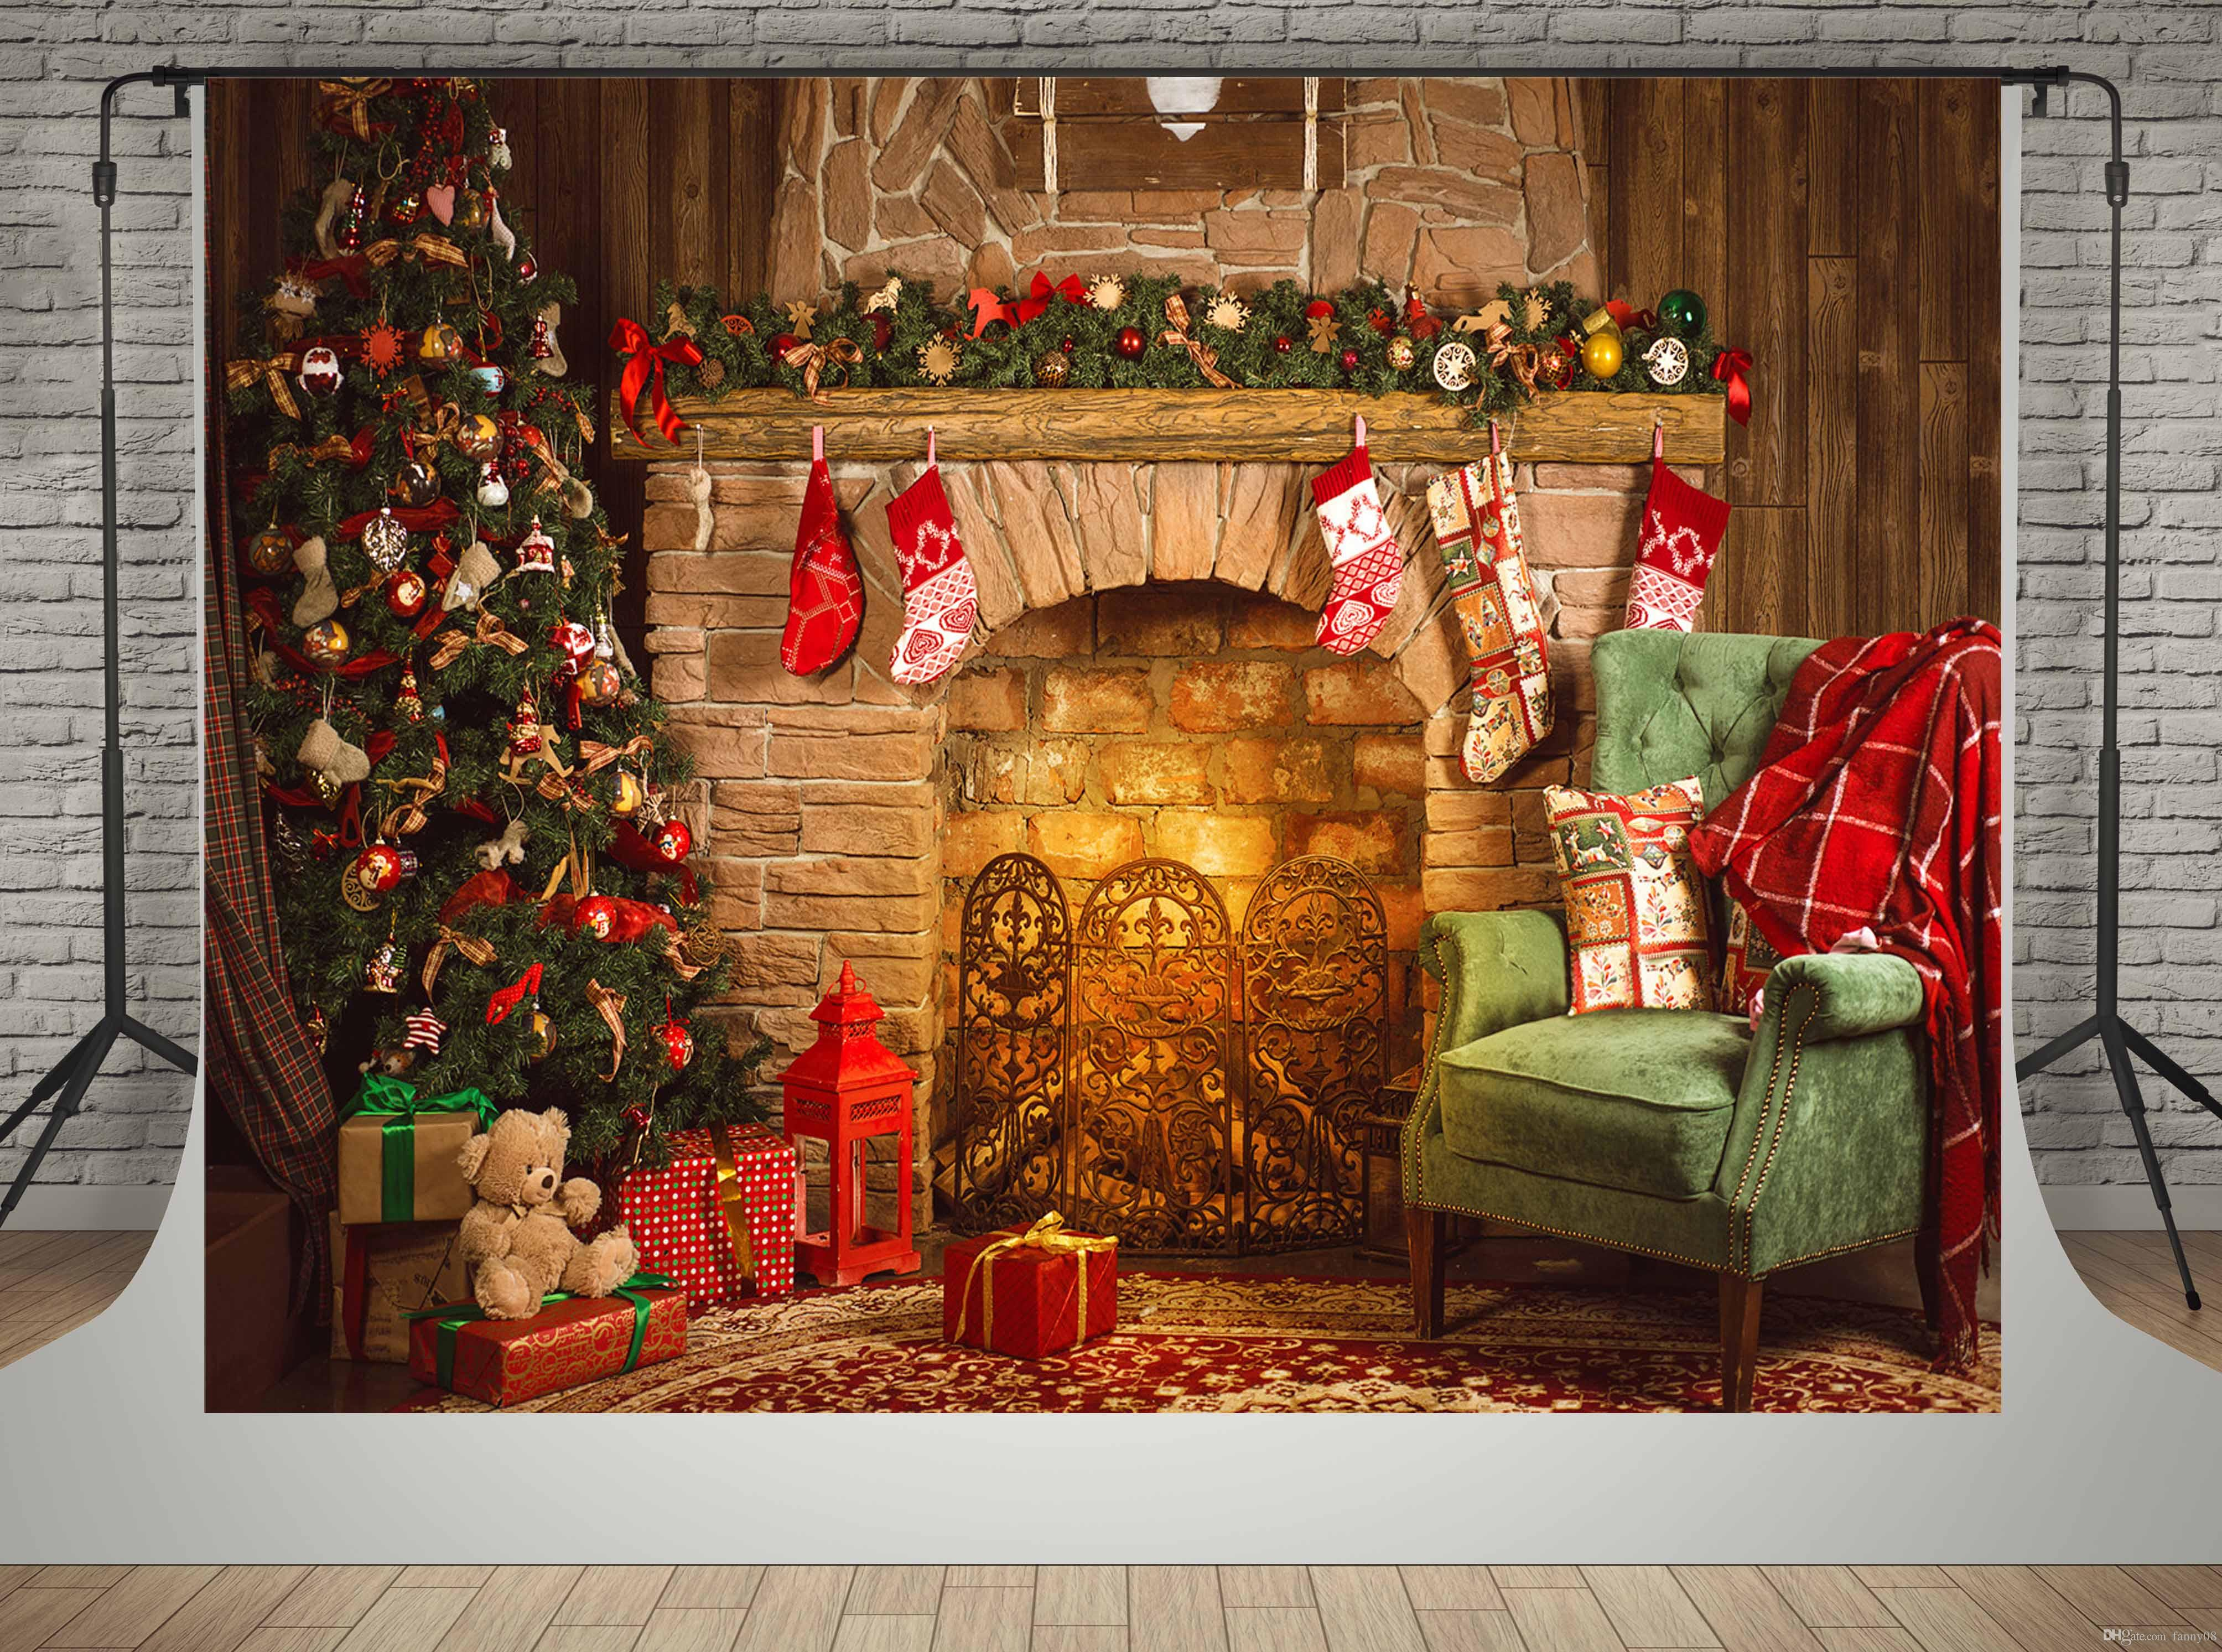 2019 Kate Microfiber Material Backdrops For Photographer Brick Fireplace Background Night Christmas Tree Photo Booth Props From Fanny08 32 73